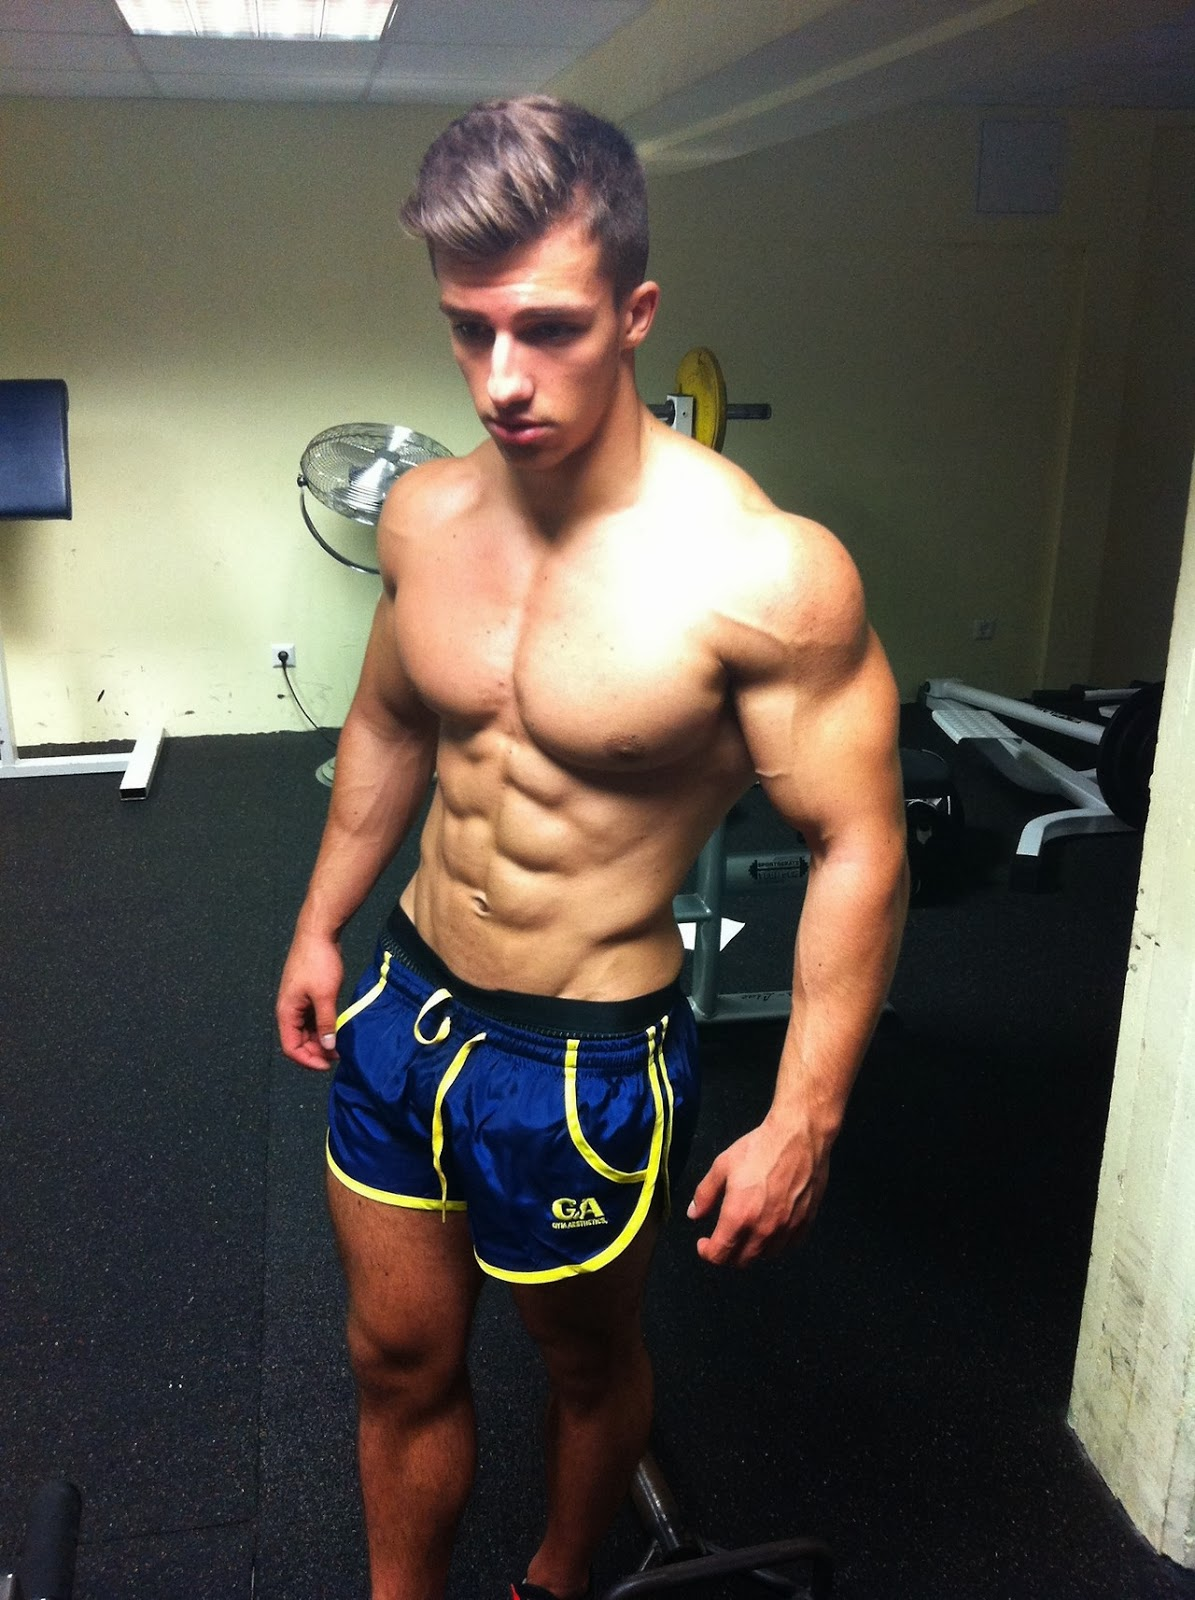 Kasch recommends Mother twink rough gym